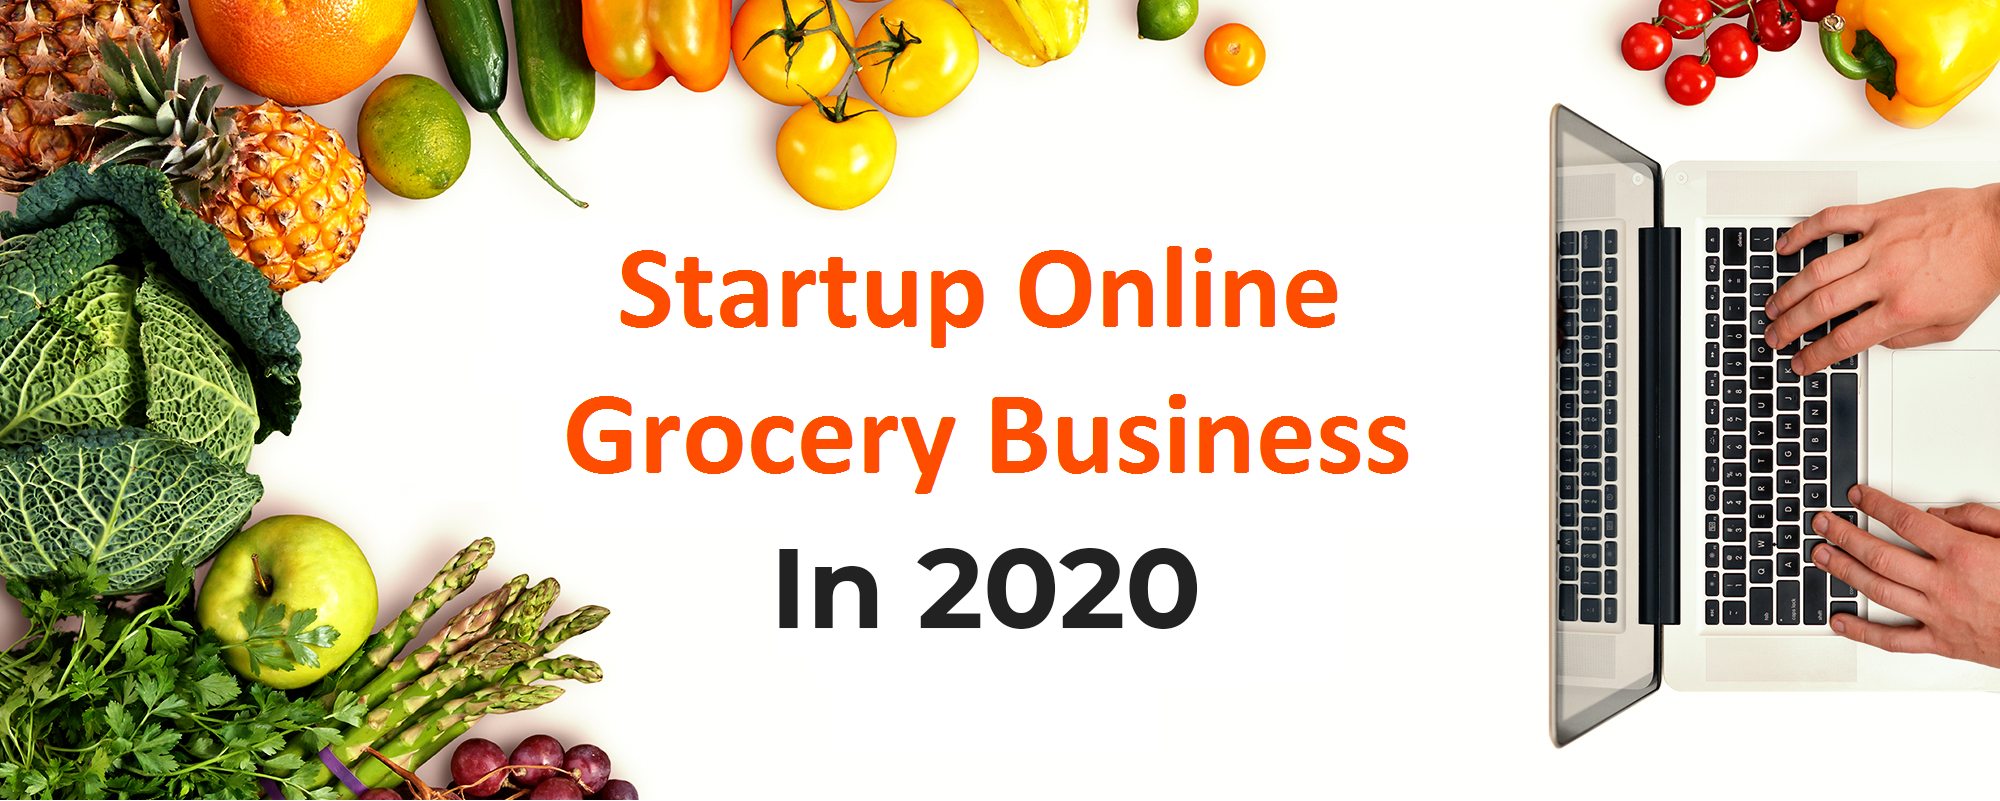 Setting up Online Grocery Business in 2020? Here Is What You Need to Know